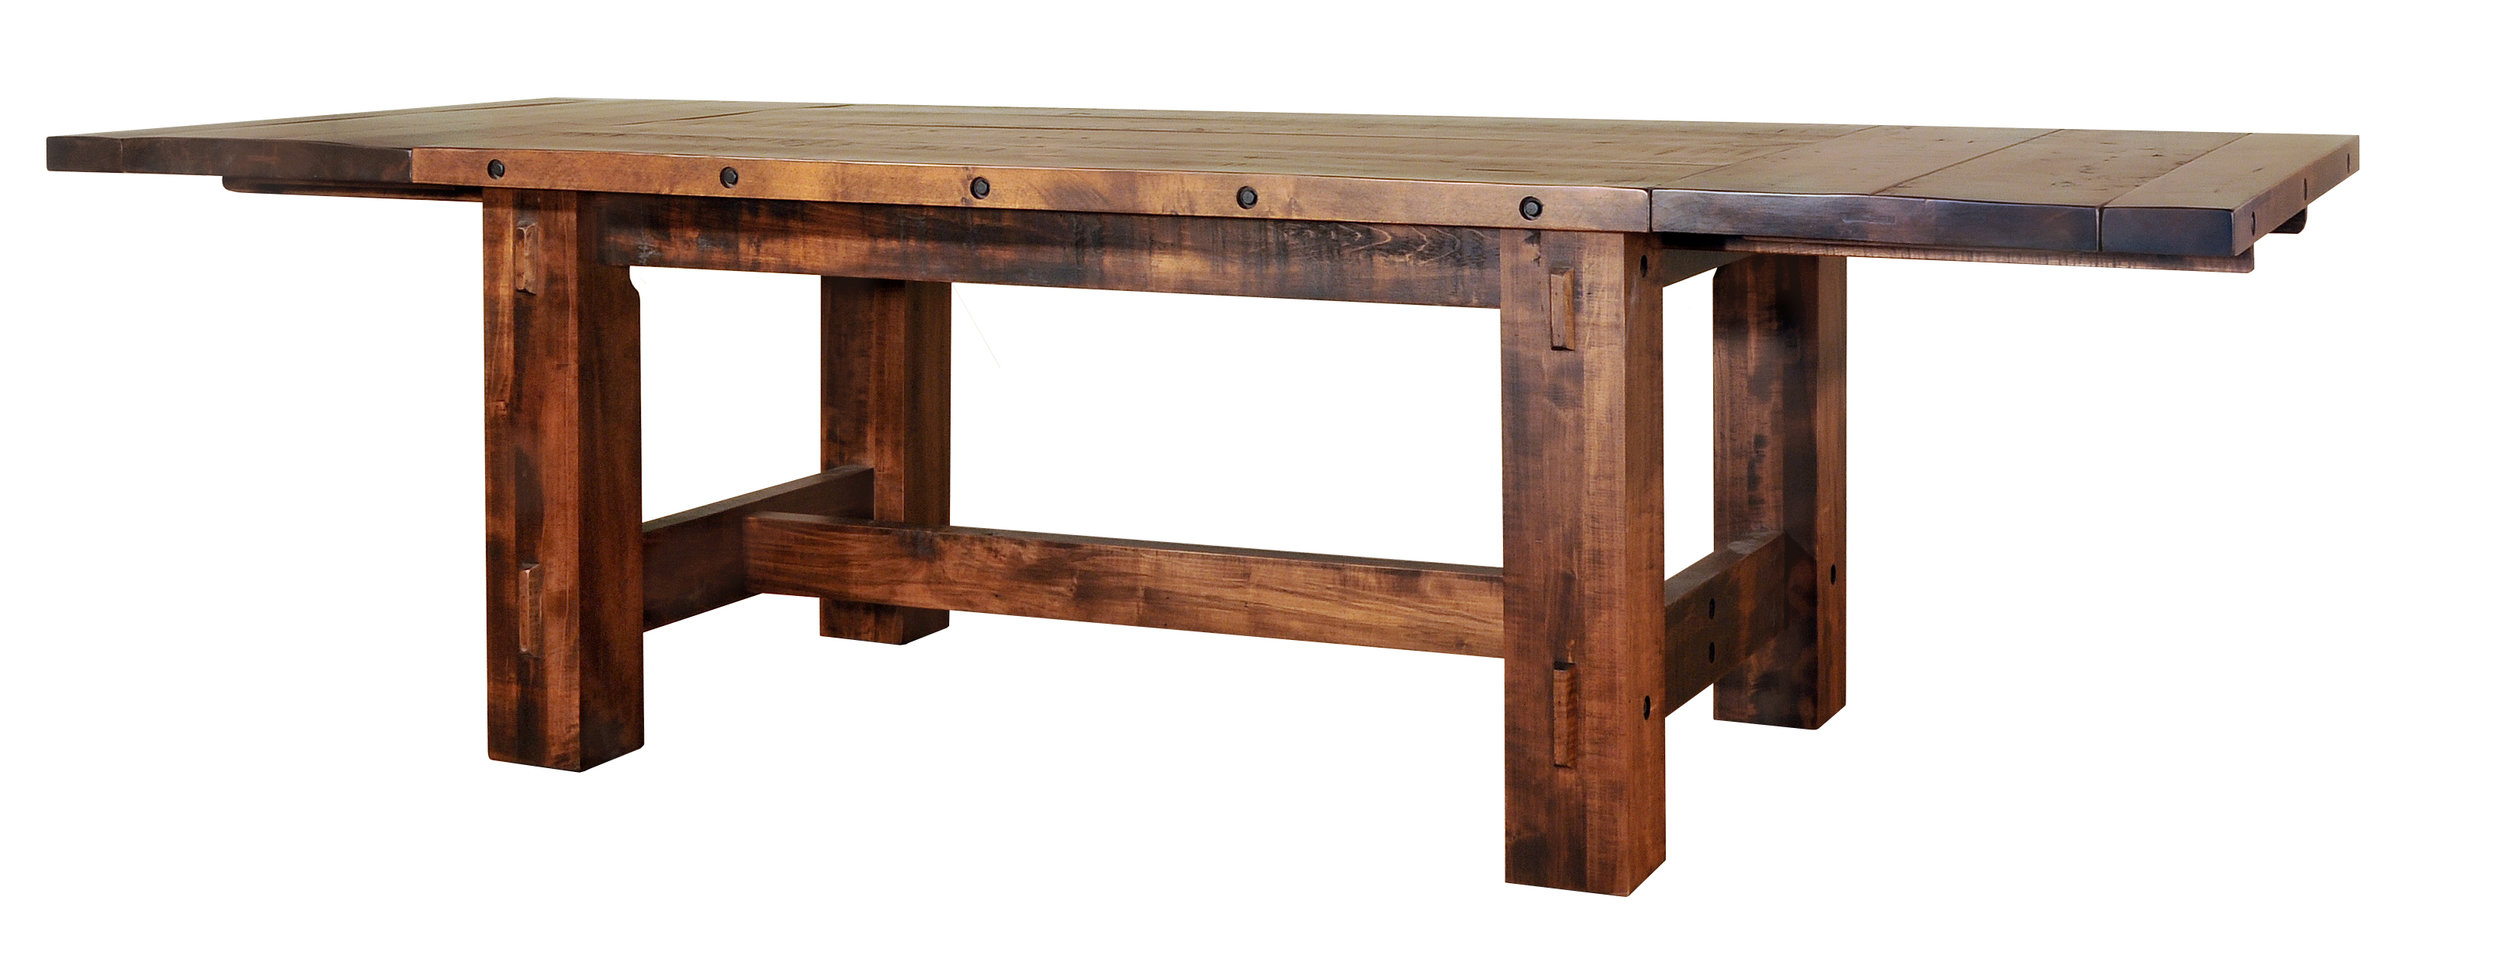 Timber Table w-leaves cut out.jpg